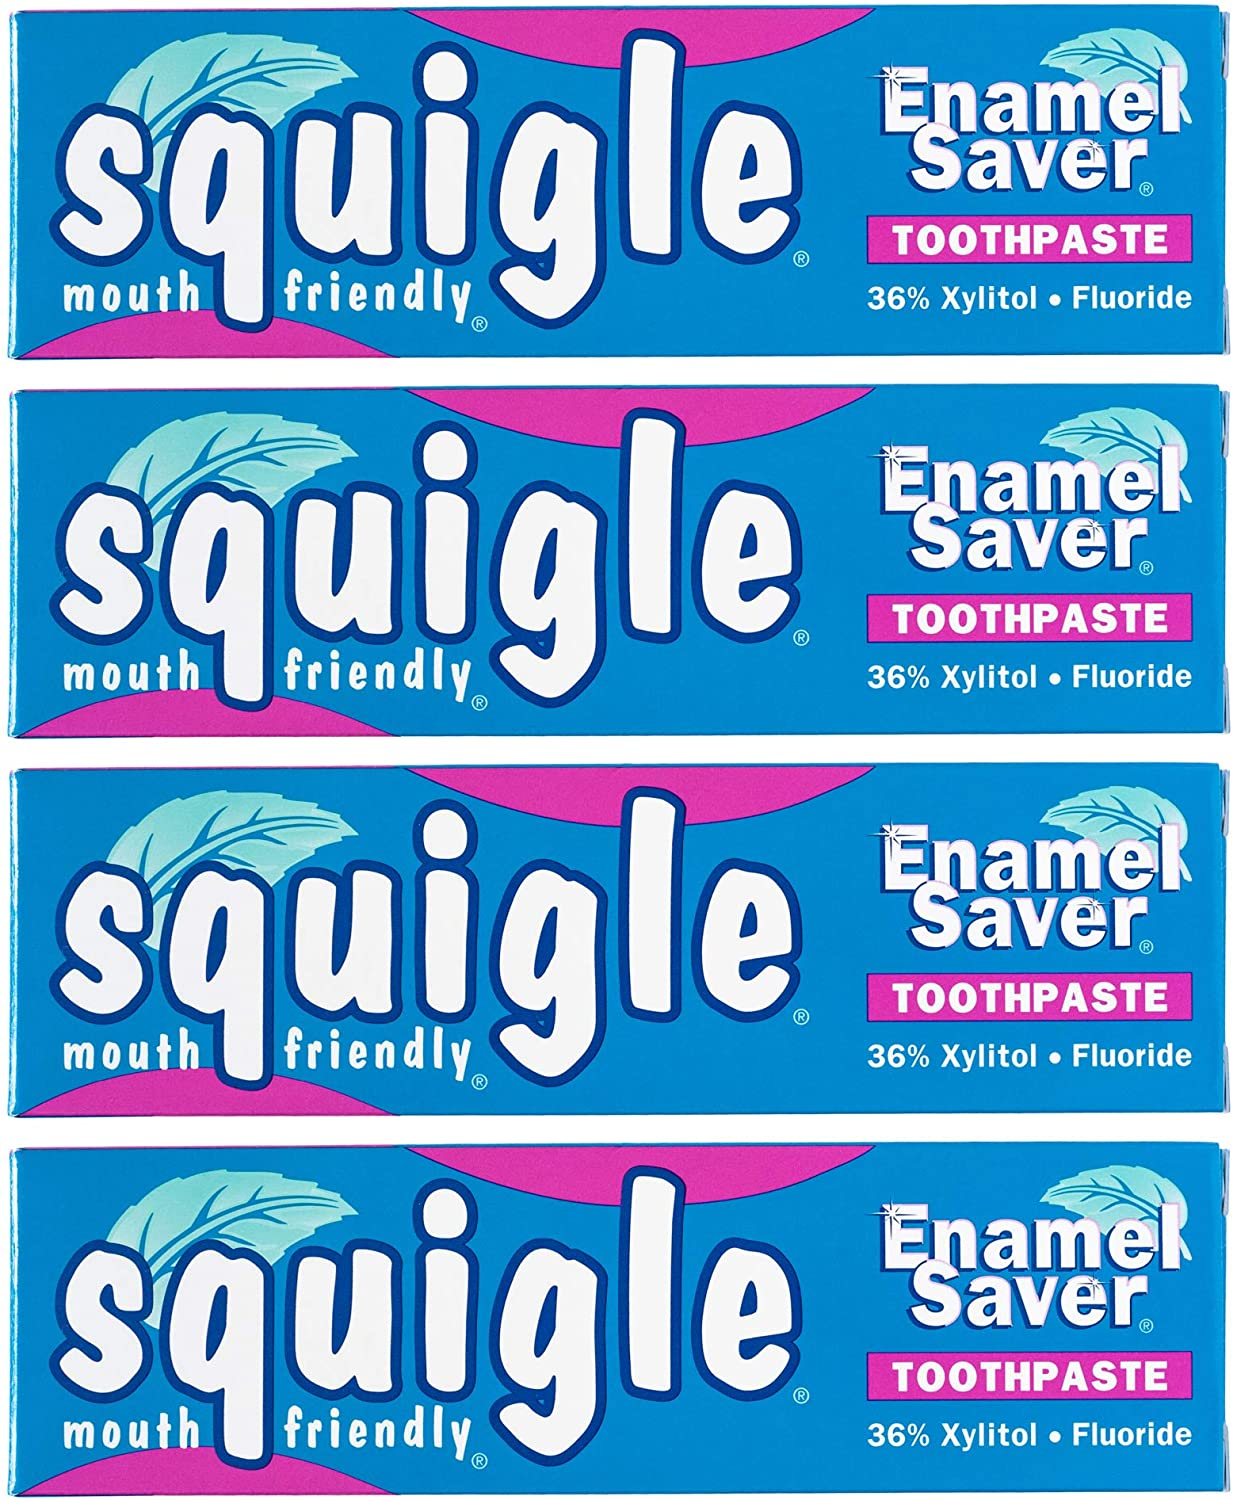 Squigle Enamel Saver Toothpaste (Helps Prevent Canker Sores, Perioral Dermatitis, Bad Breath, Chapped Lips. Soothes and Protects Dry Mouths) - 4 Pack